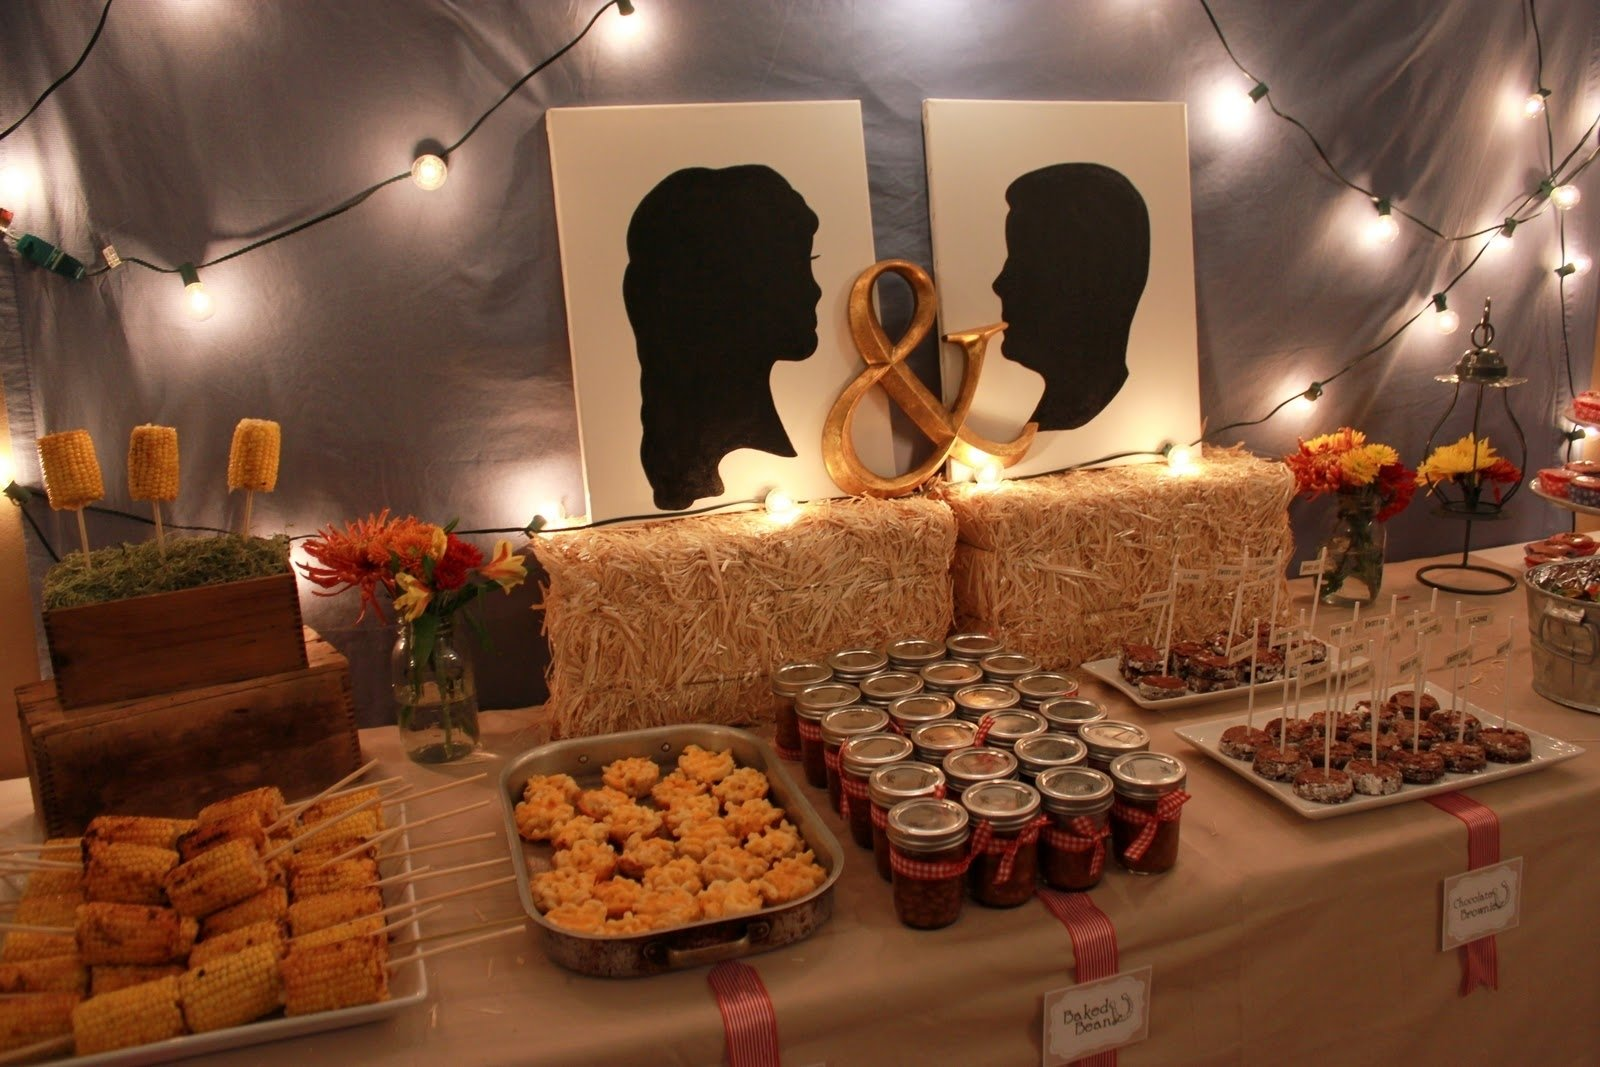 10 Unique Wedding Shower Ideas For Couples pincheryl stephens gardner on outdoors pinterest couple 2021